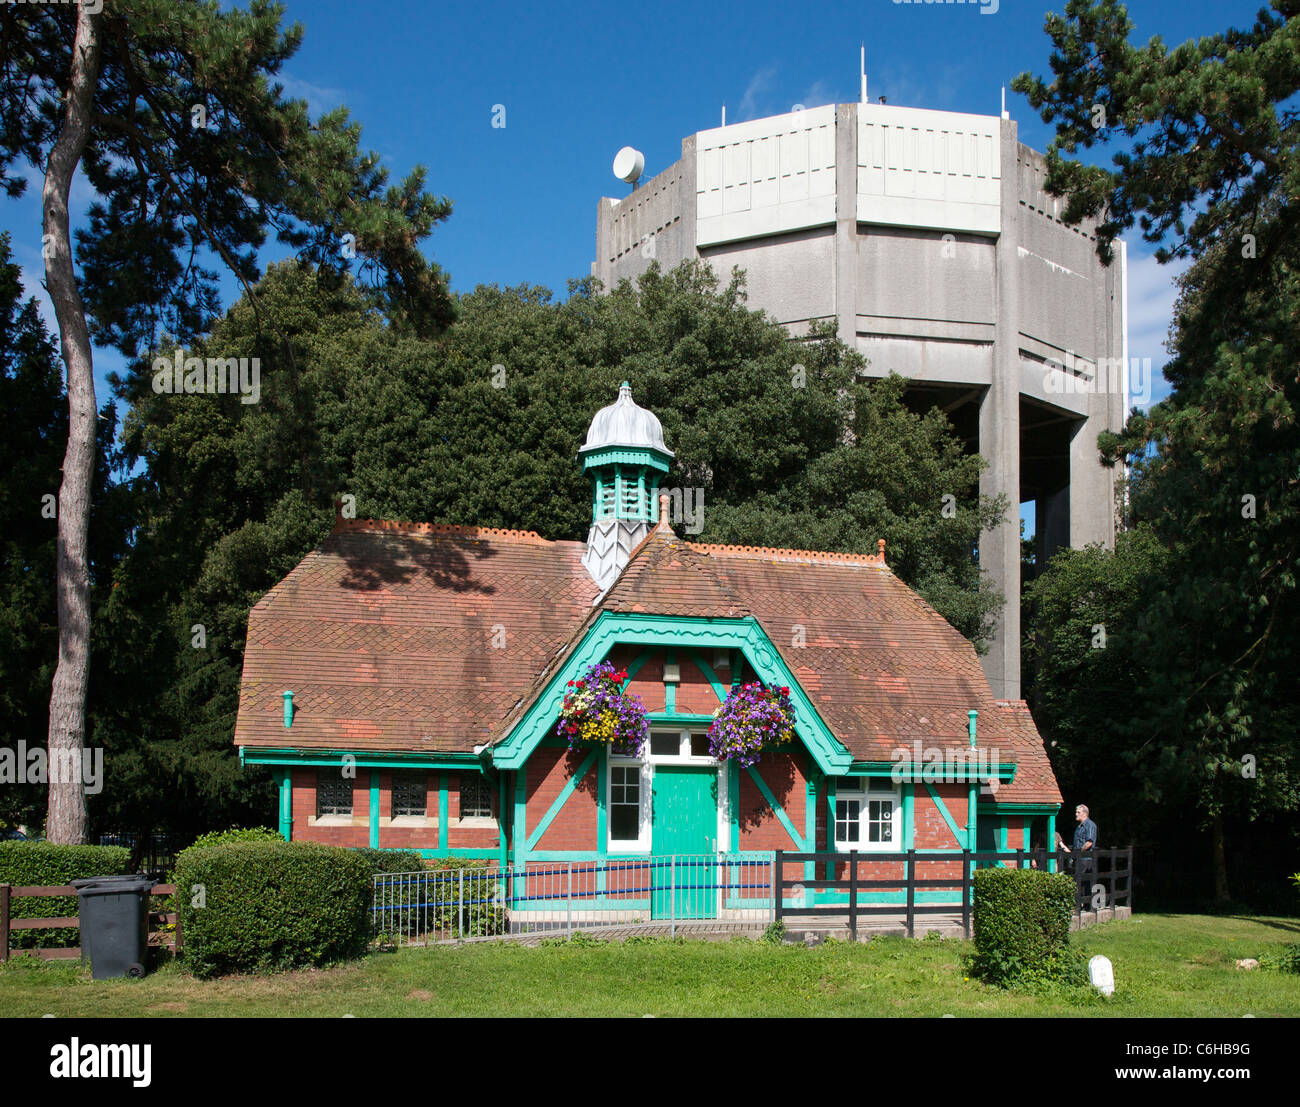 Water tower and Victoria Hughes memorial public conveniences on Clifton Downs in Bristol - Stock Image